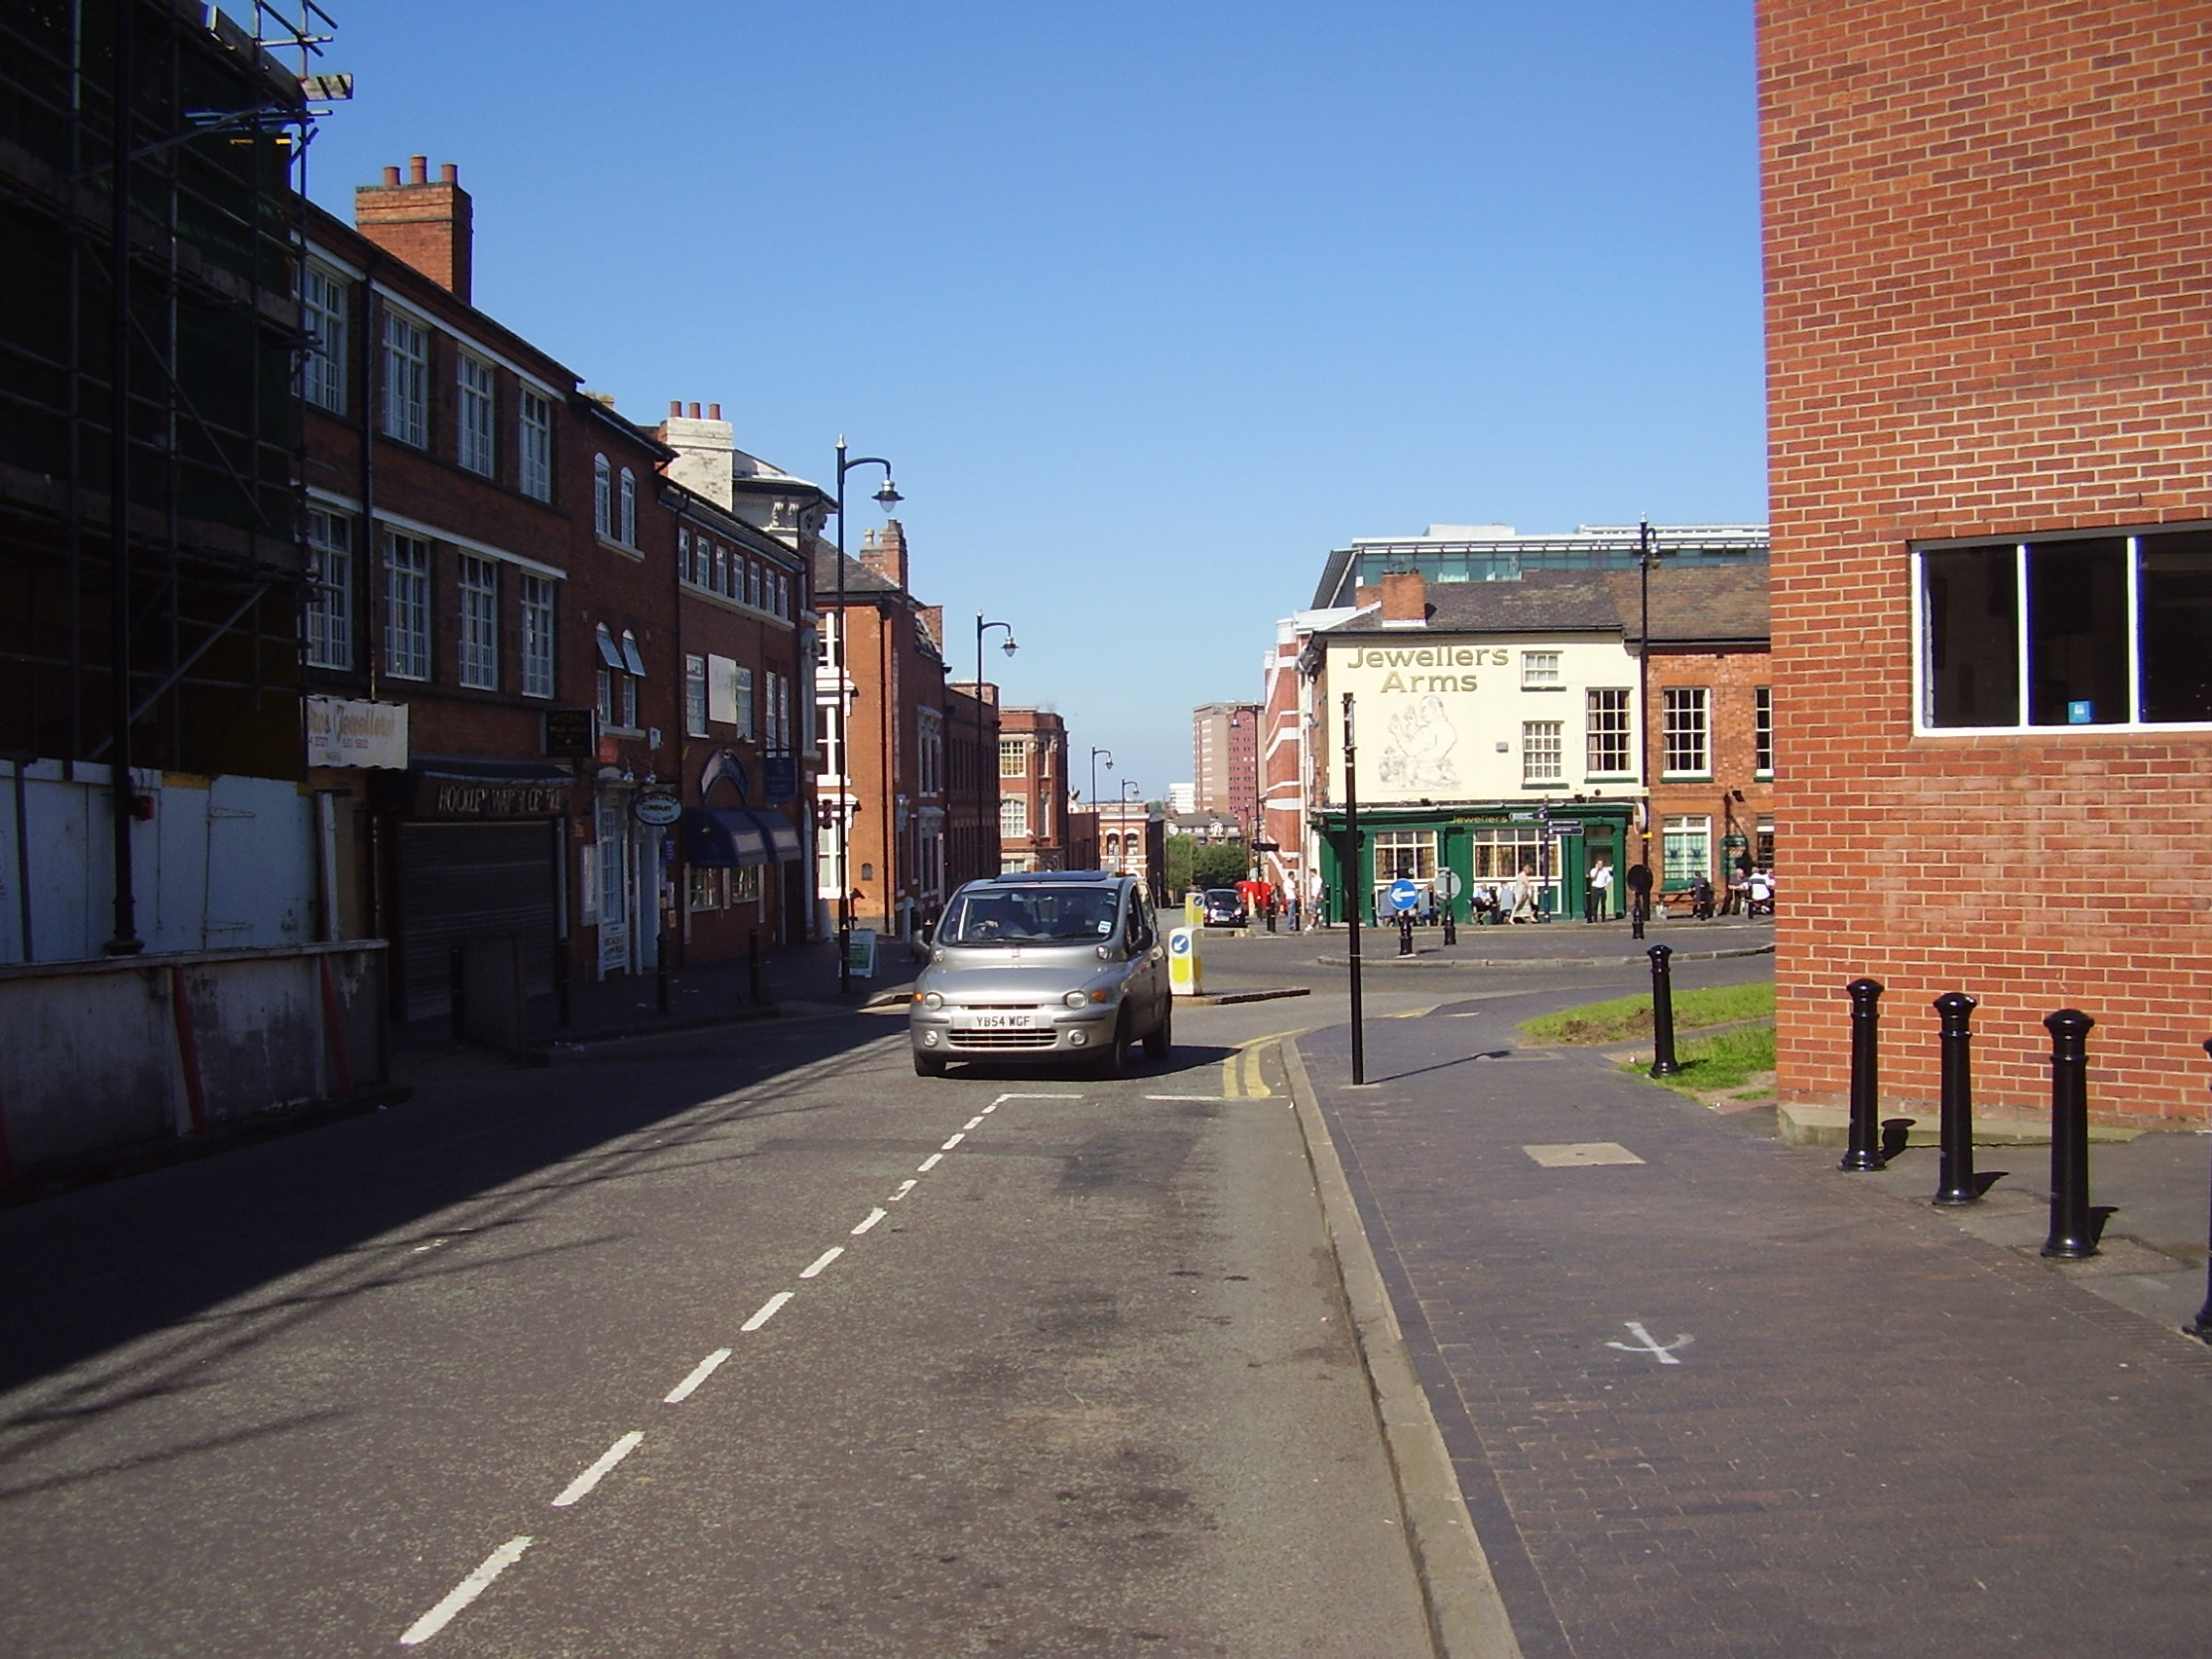 Jewellery Shops in Vyse St, Jewellery Quarter Birmingham photographed  2008